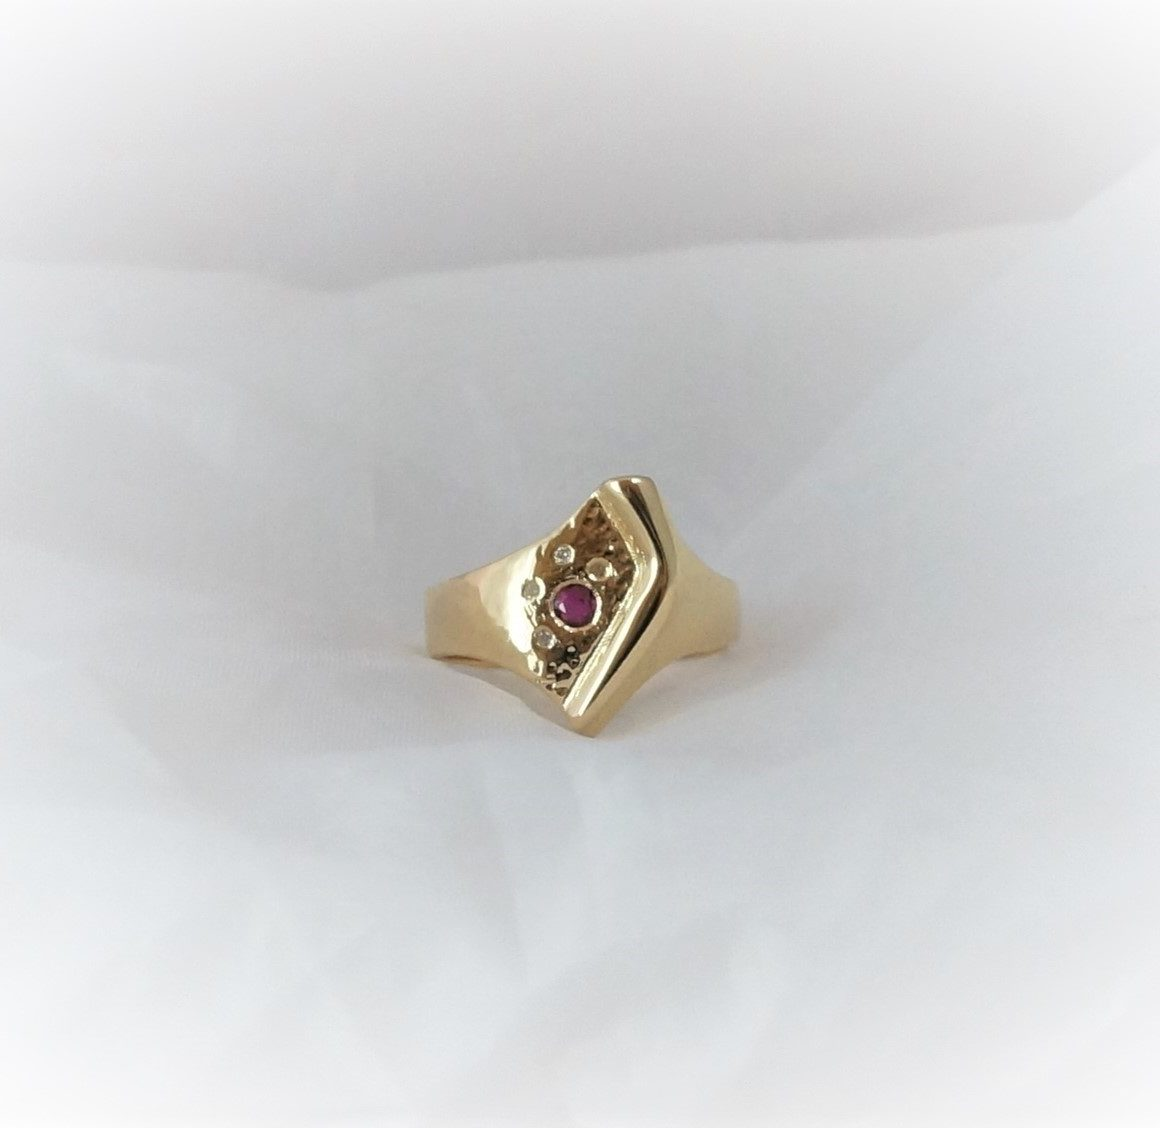 Park Road Jewellery, Bespoke Handmade Ruby Diamond Dress Cocktail Ring Yellow Gold Personalized Ring